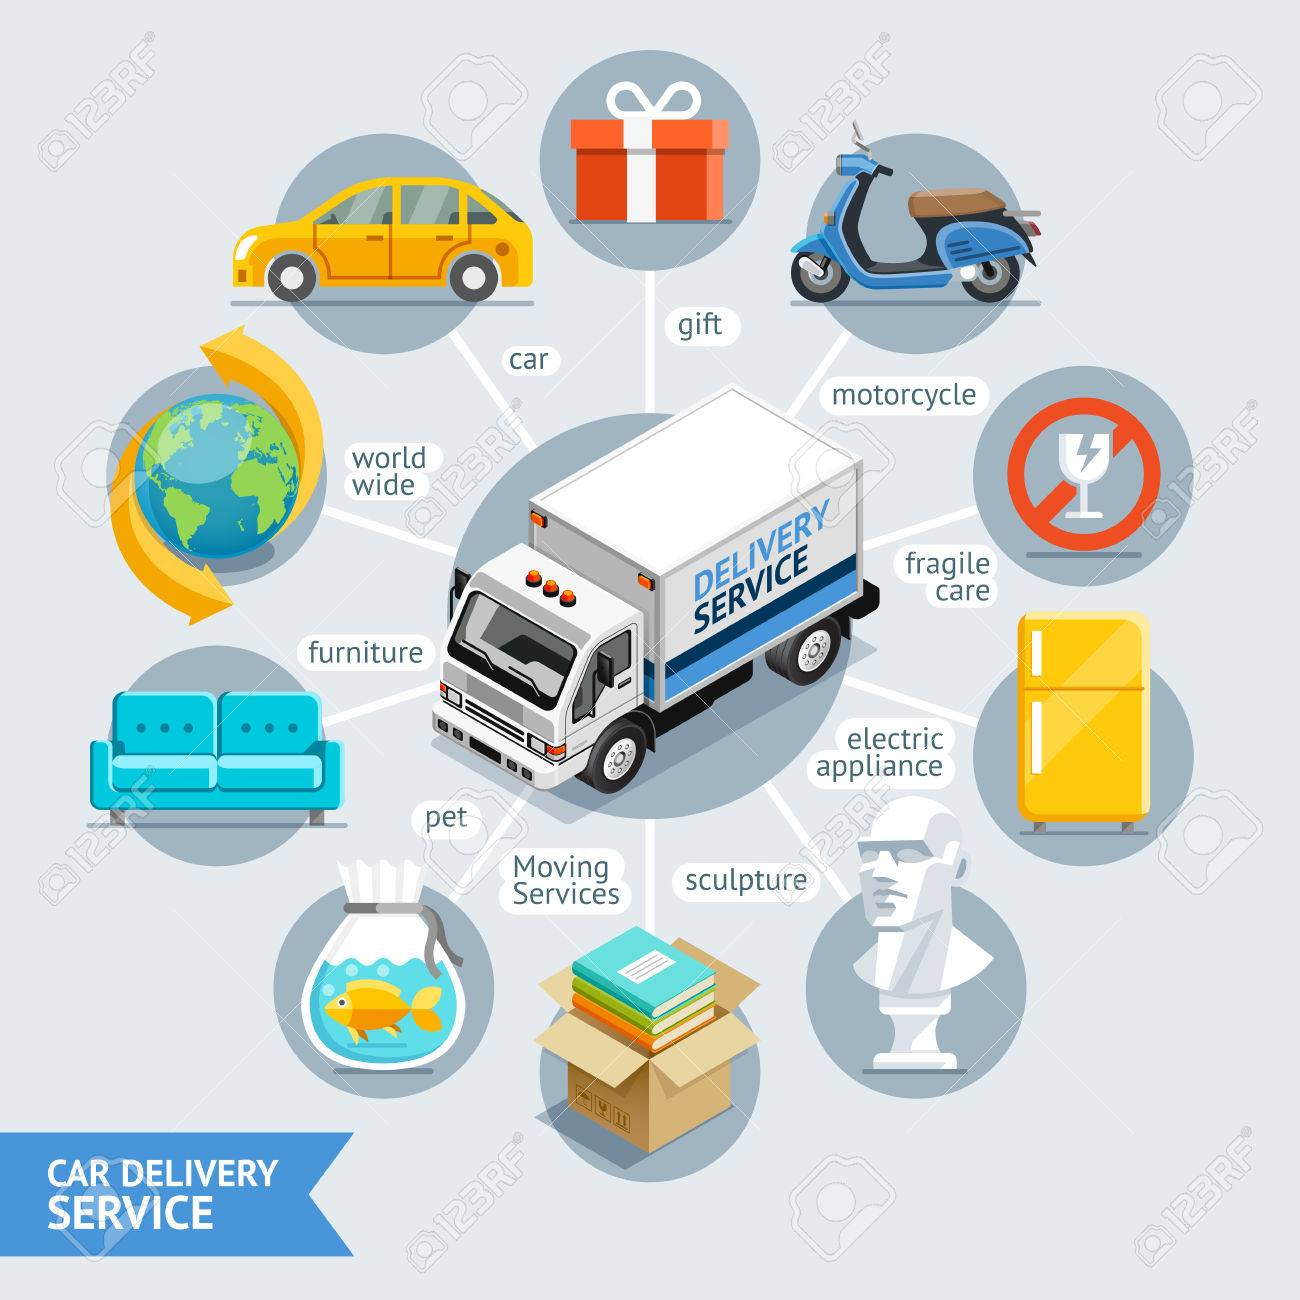 Car Delivery Service Conceptual Isometric Flat Style. Illustration. Can Be Used For Workflow Layout Template, Diagram, Number Options, Web Design, Infographics, Timeline. - 50958316